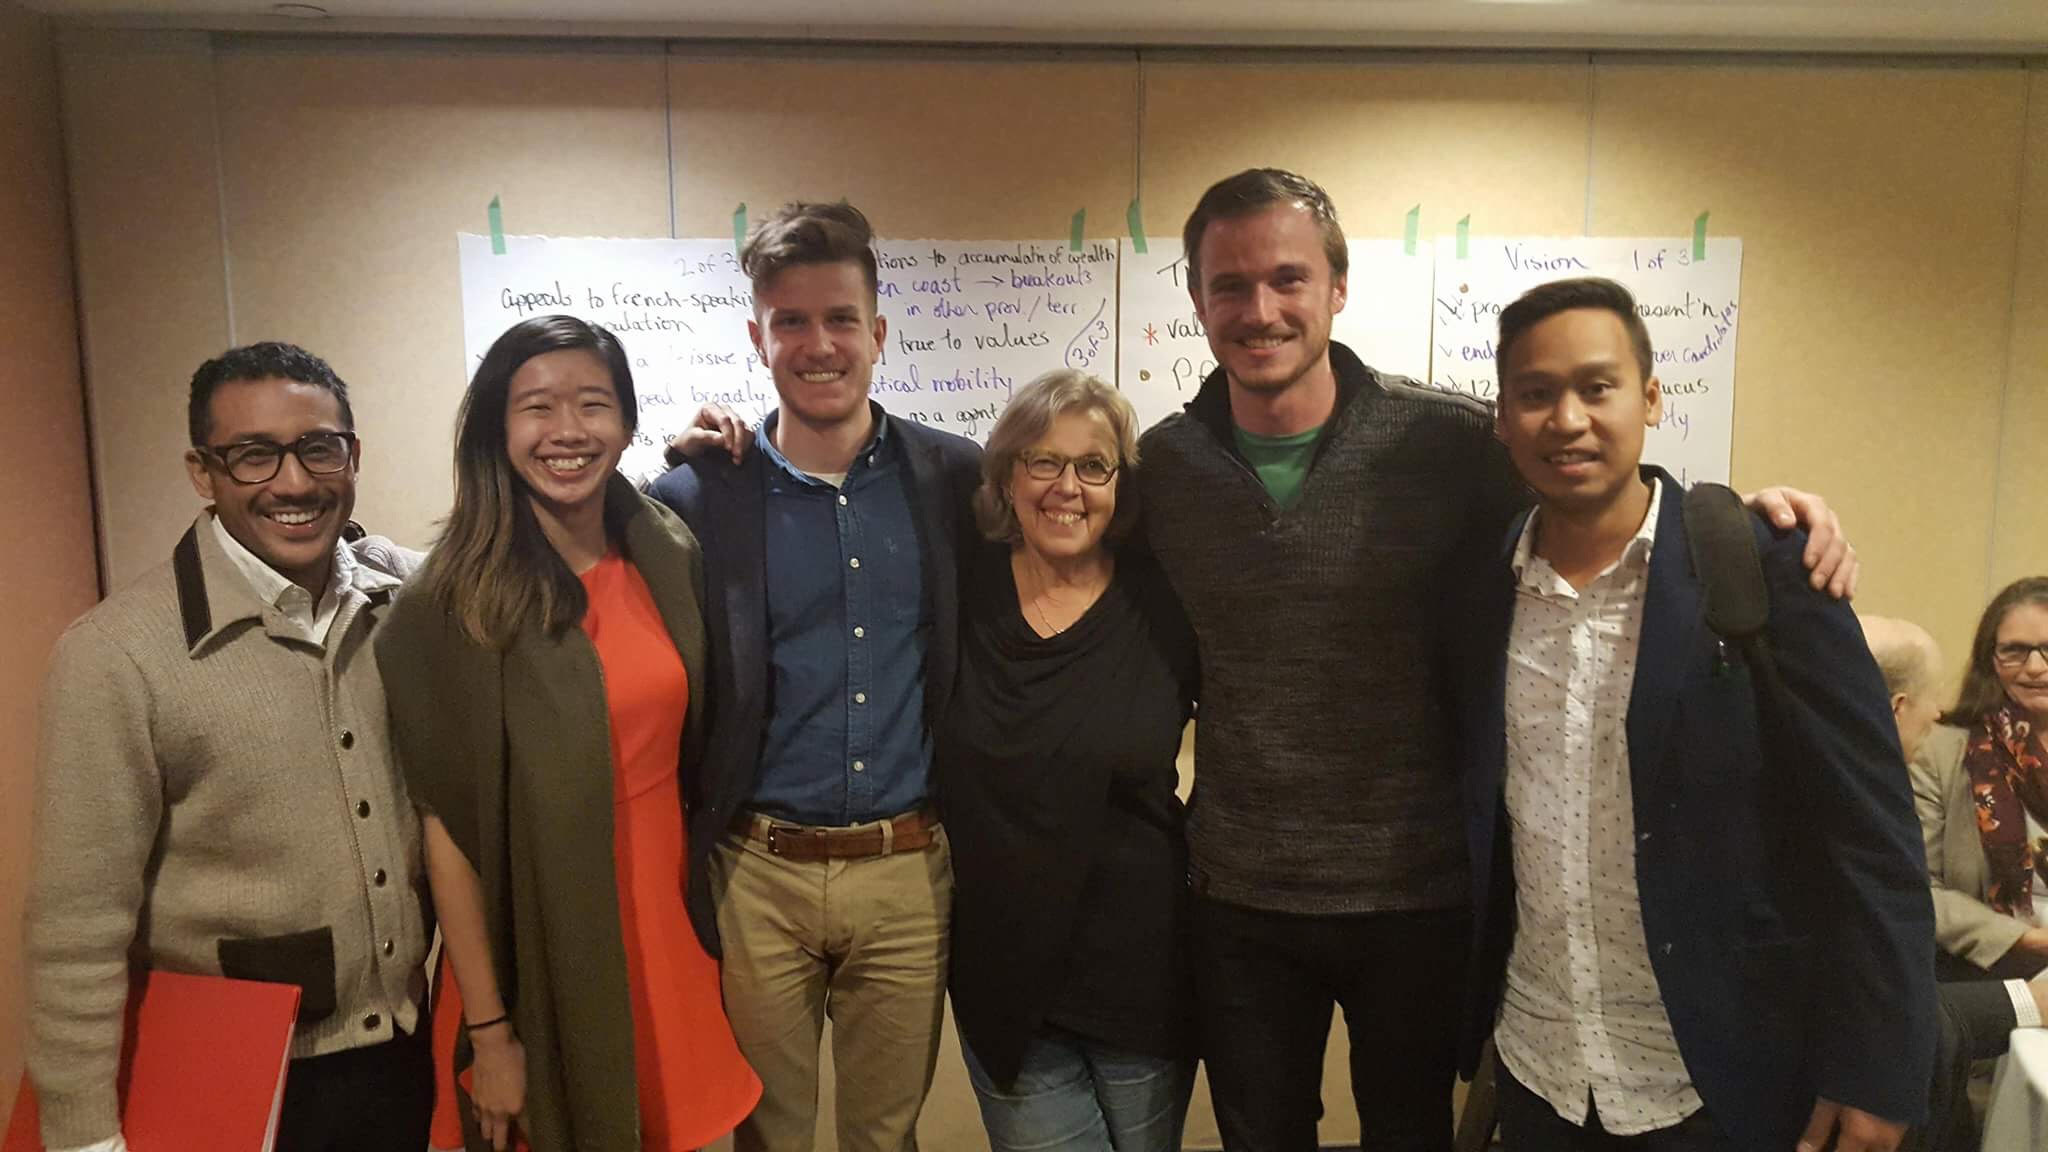 Shawn (far left) with Elizabeth May and other Young Greens on federal council: Cherie Wong, William Gagnon, Ian Soutar and Thana Boonlert.